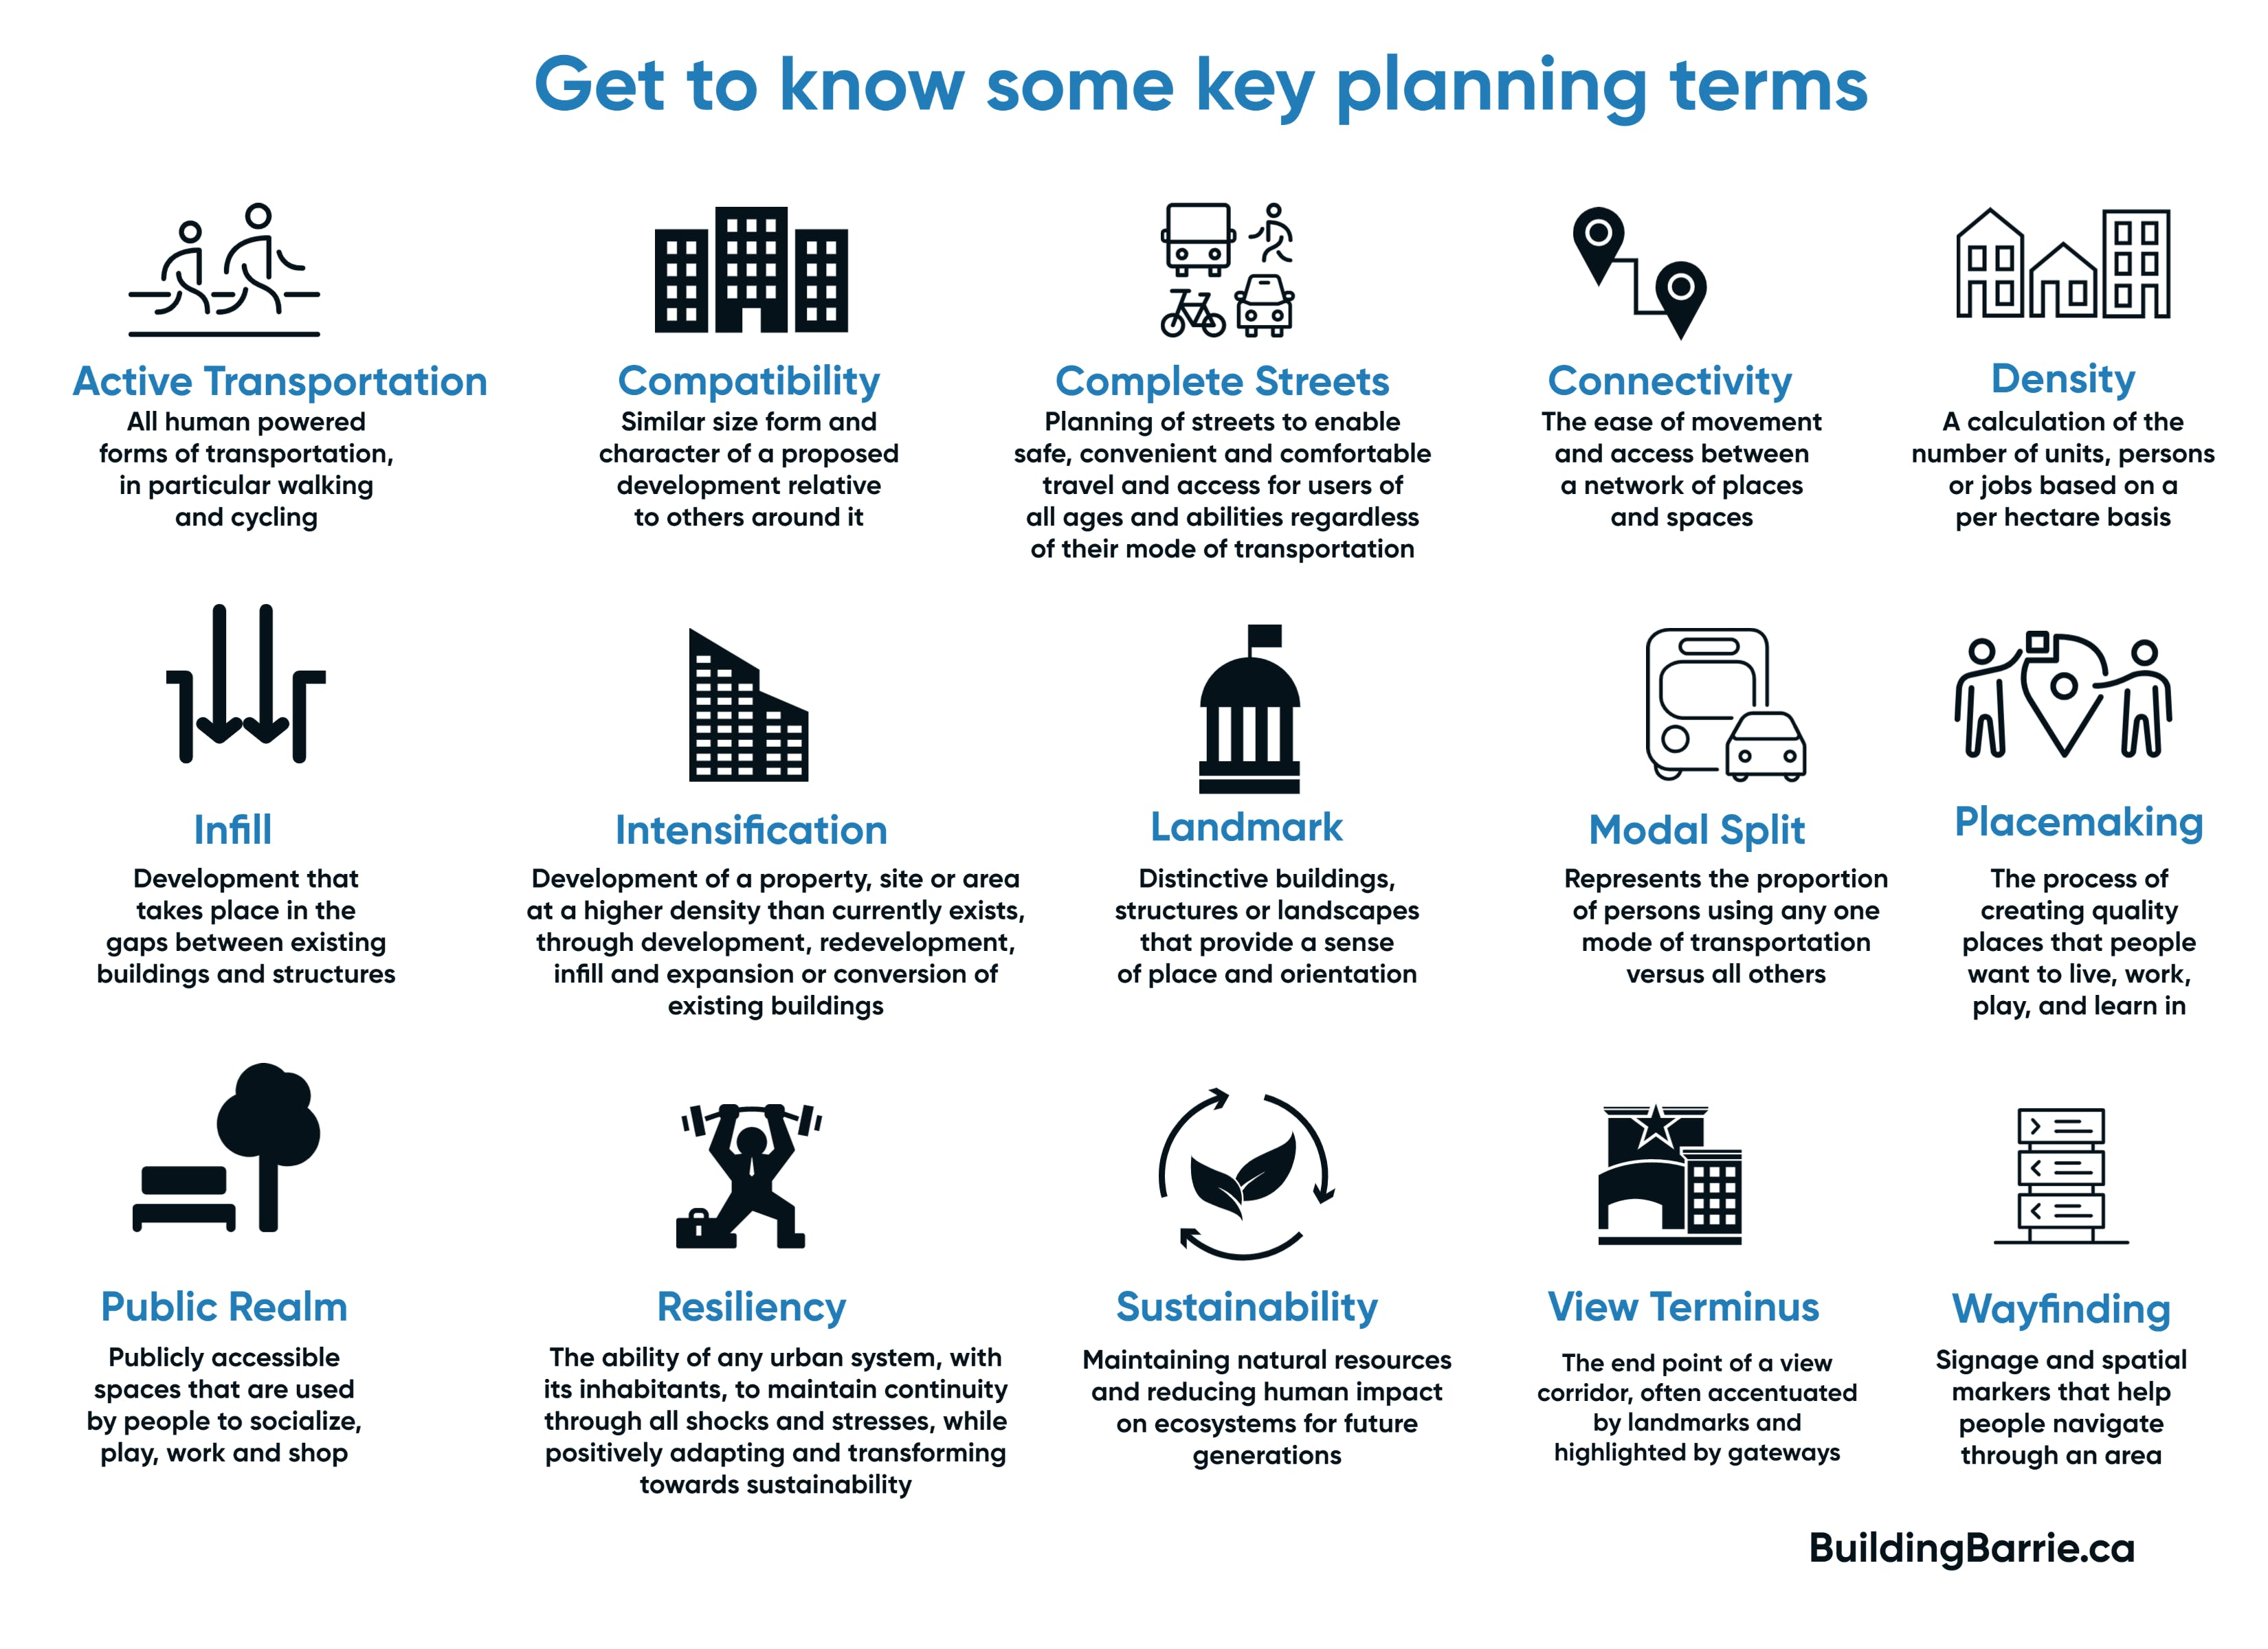 Key Planning Terms